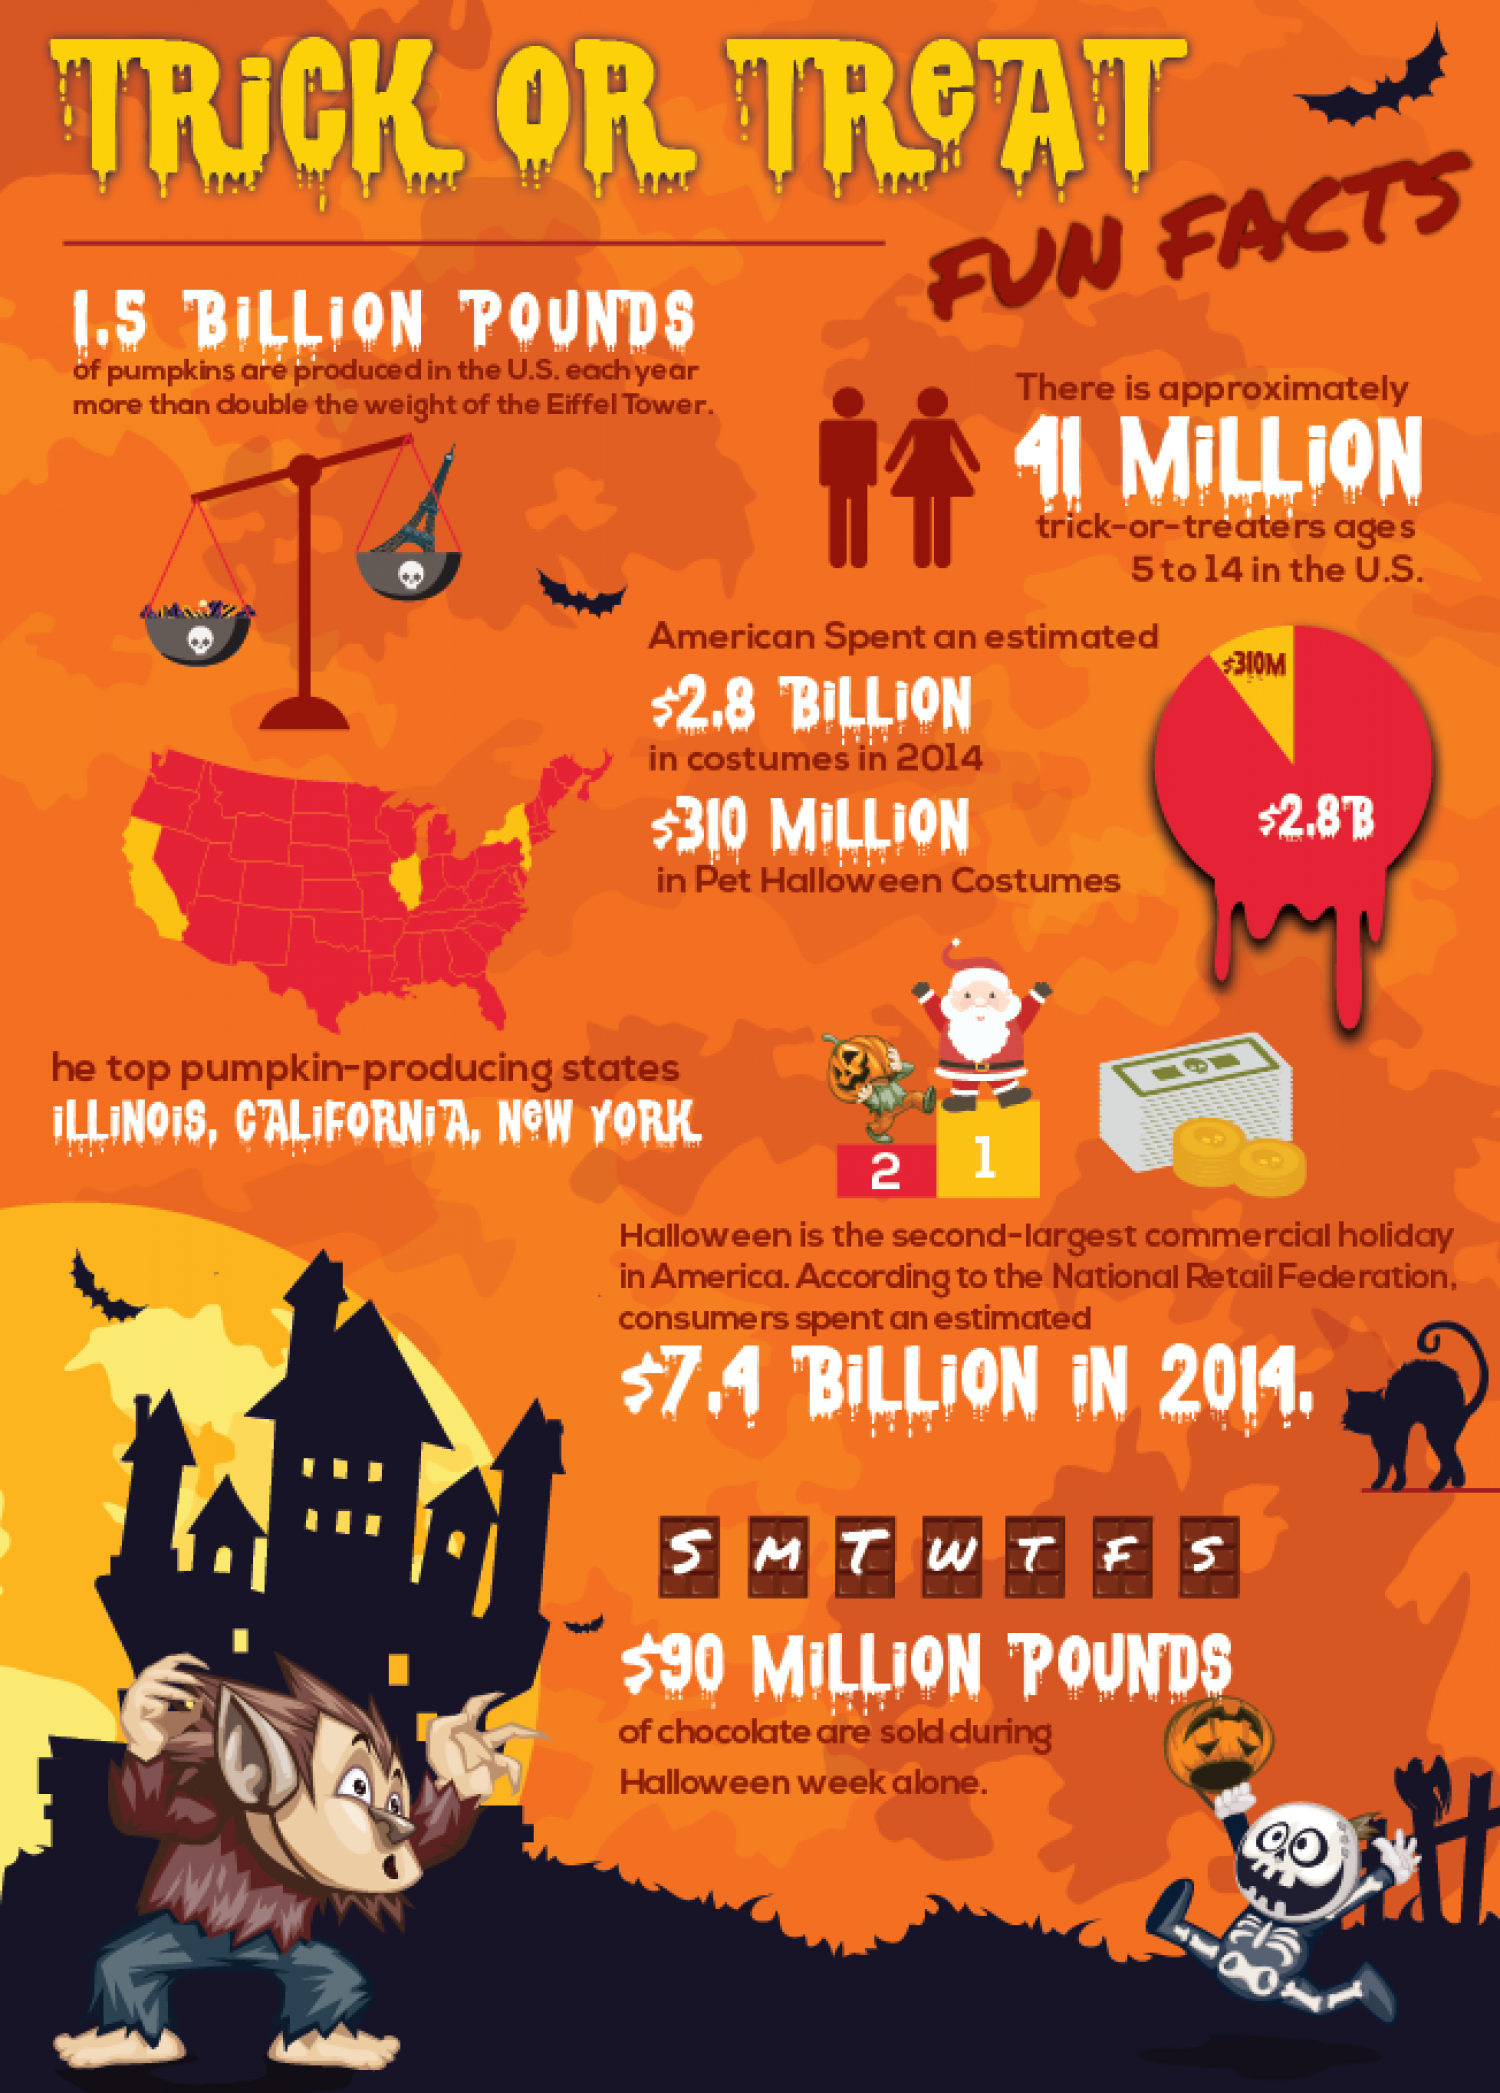 Trick or Treat, Fun Halloween Facts | Visual.ly